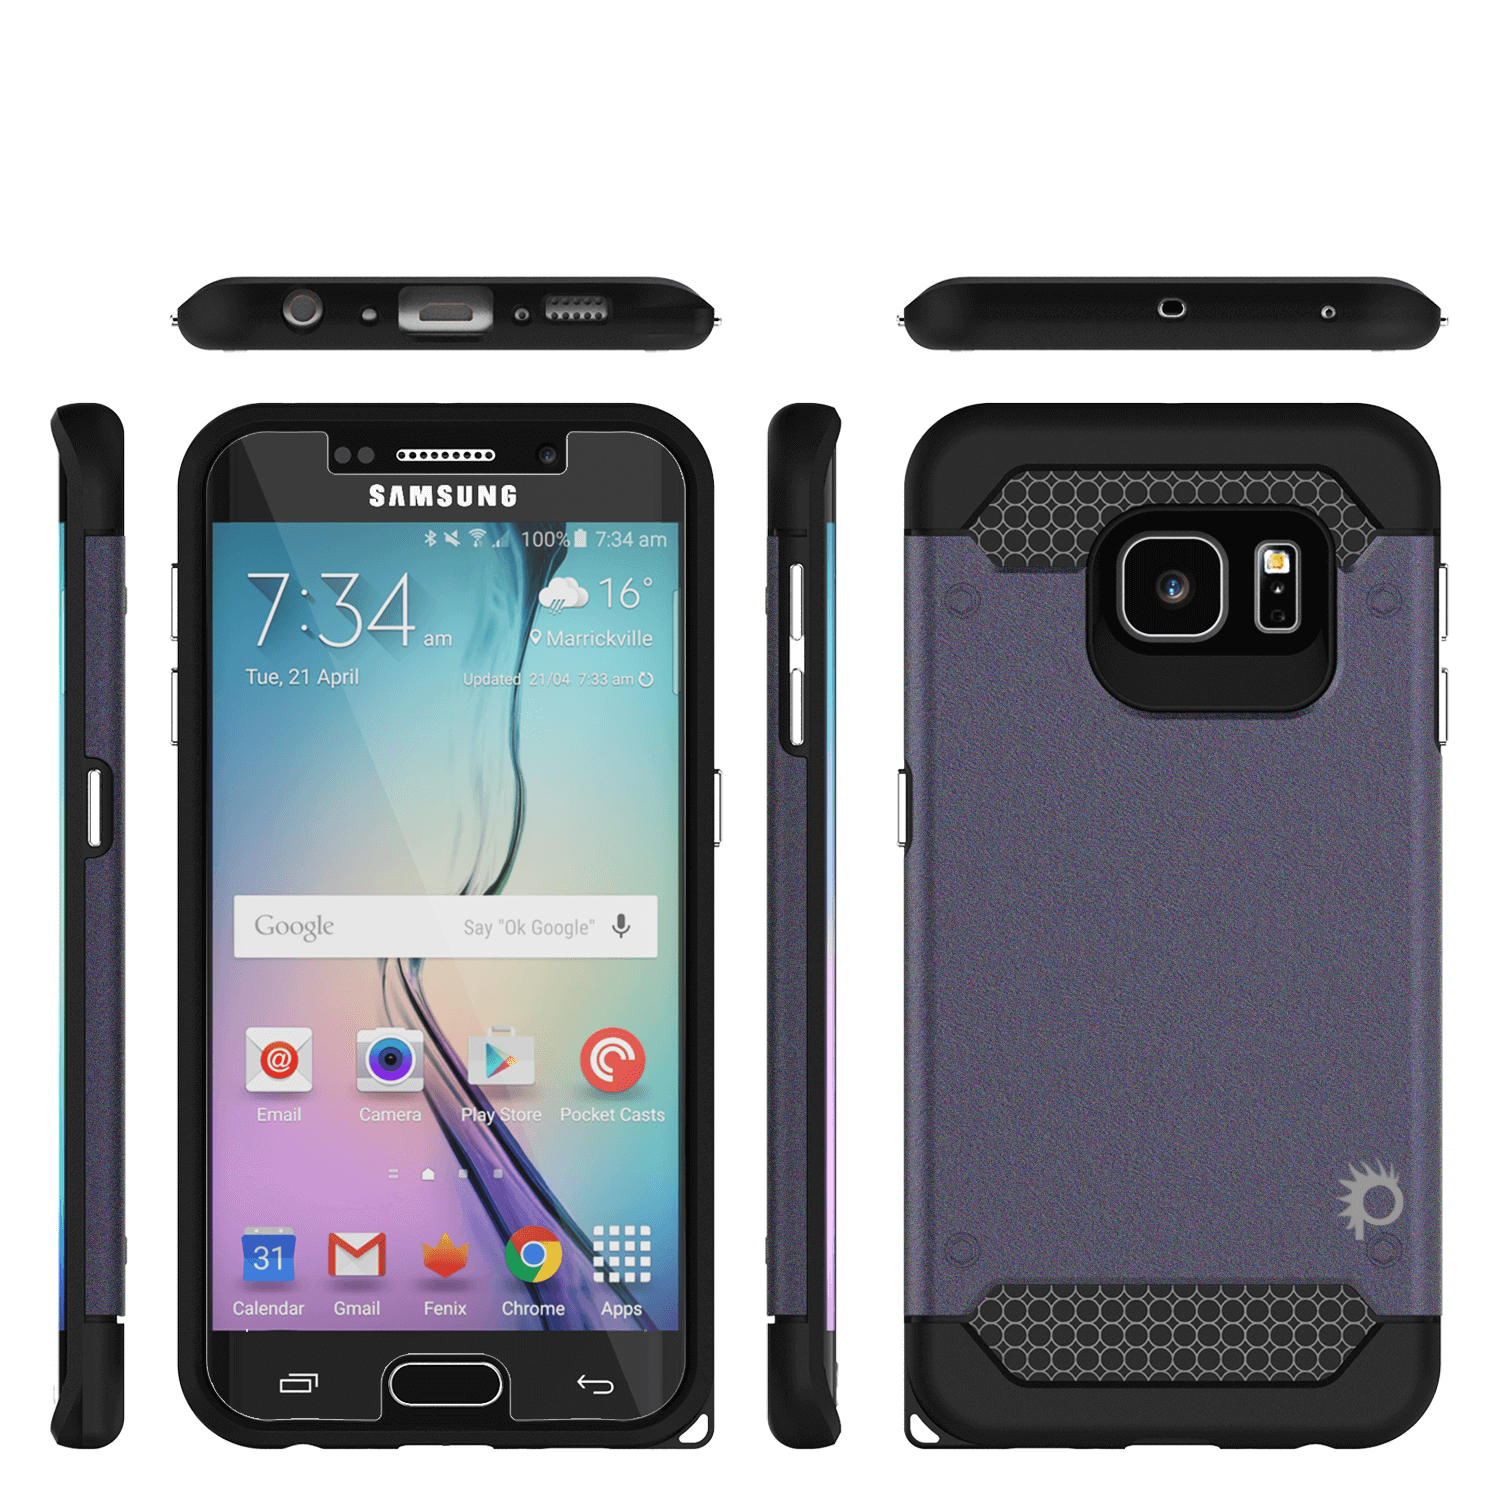 Galaxy s6 EDGE Plus Case PunkCase Galactic Black Series Slim Armor Soft Cover w/ Screen Protector